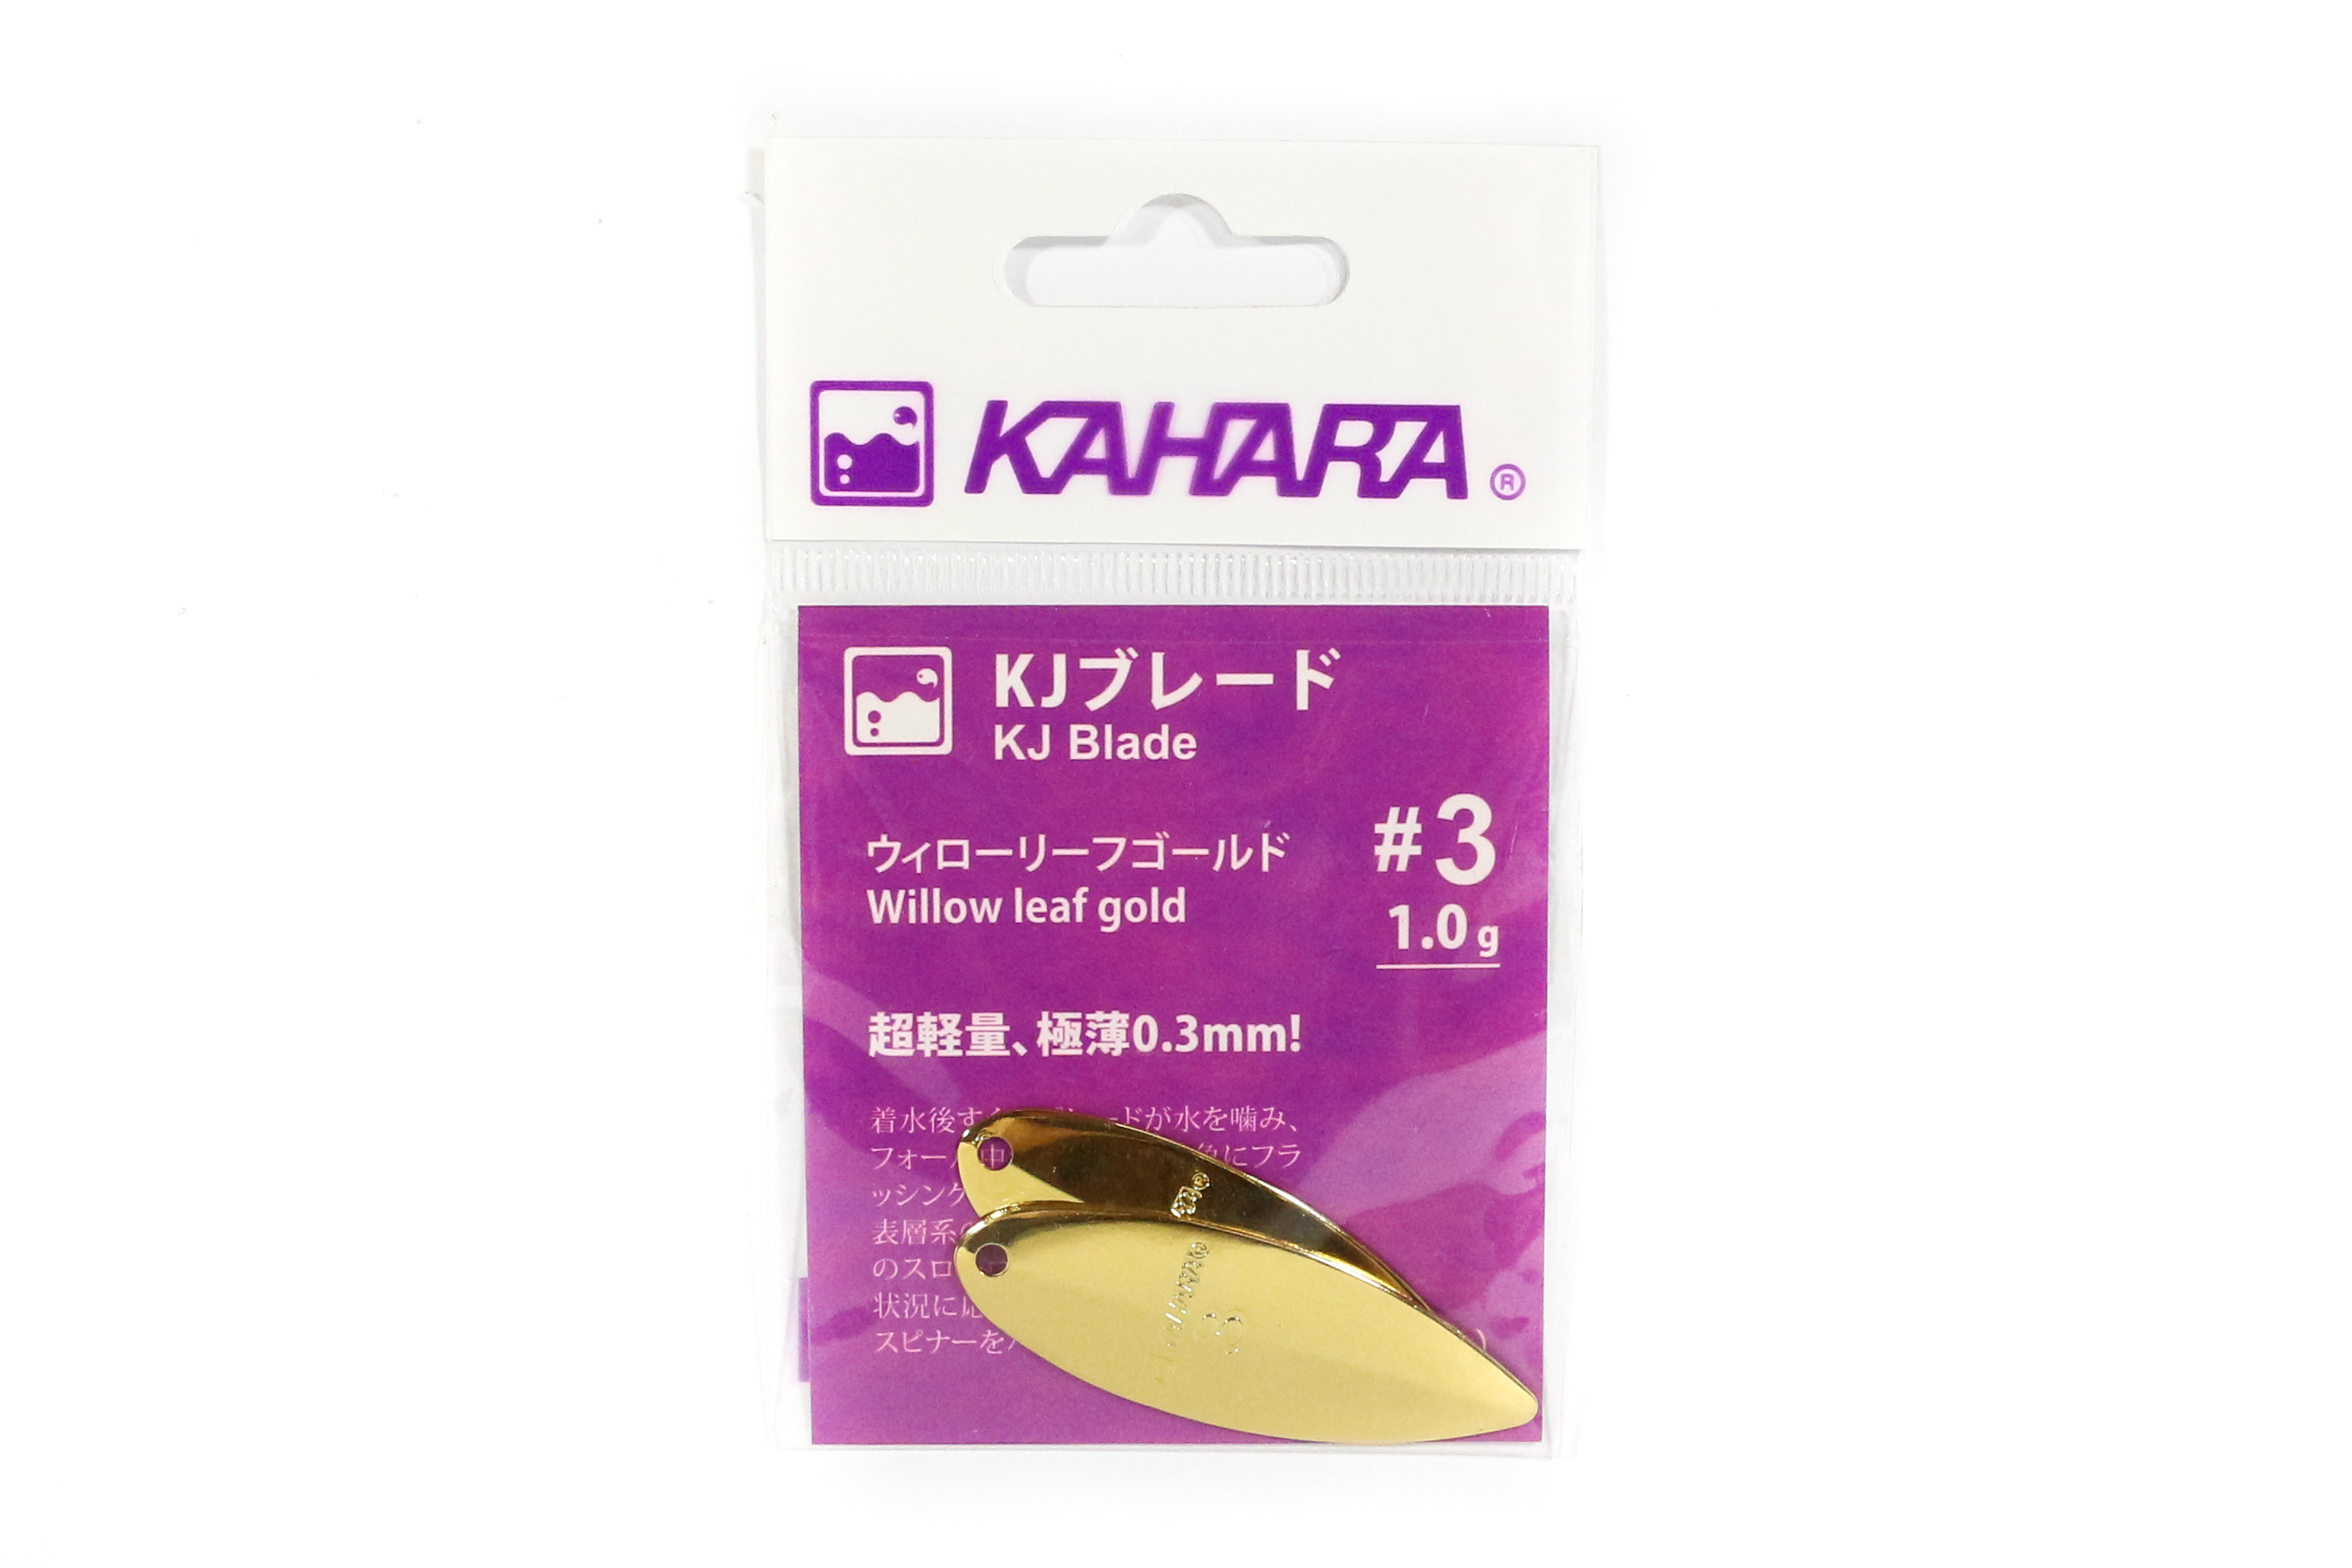 Kahara Lure Leaf Willow Blade Gold Size 3 (3325)